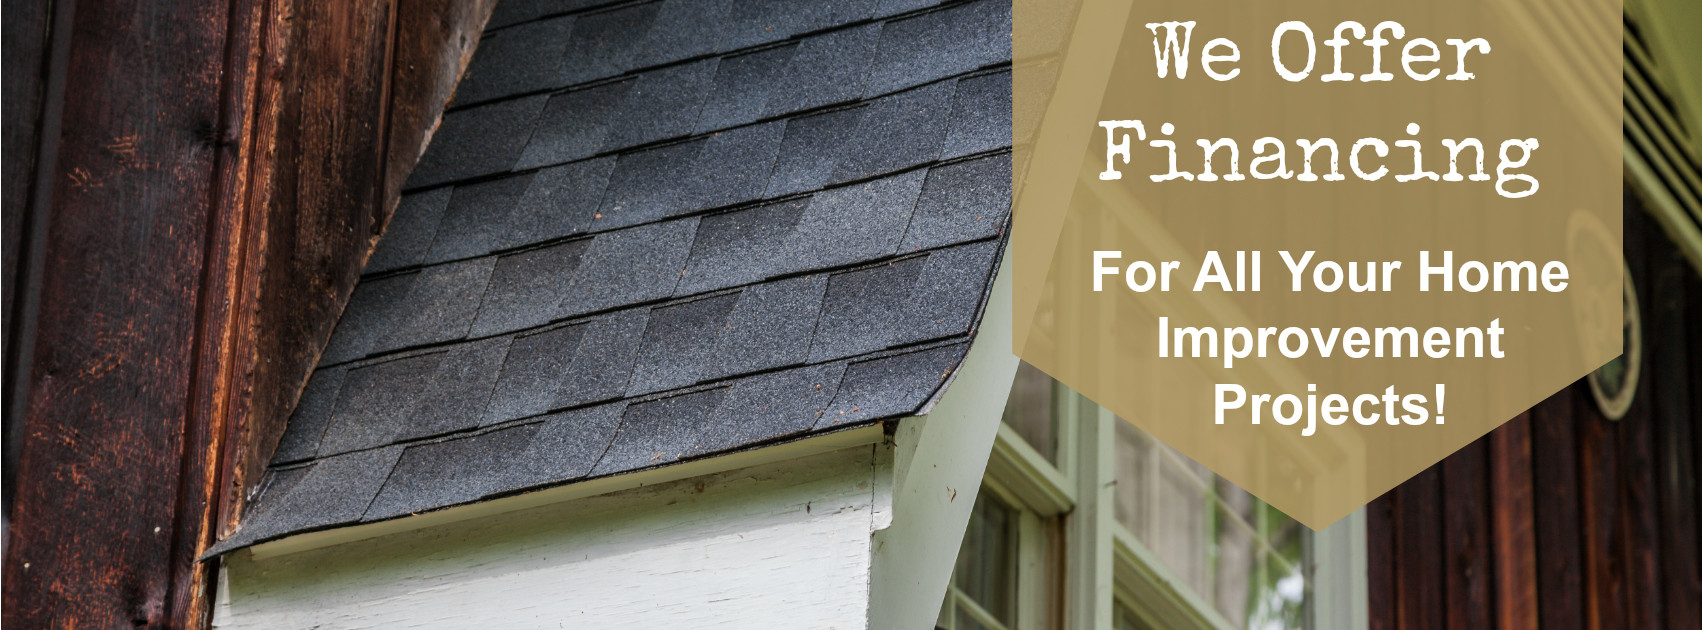 Affordable Roof Financing Options